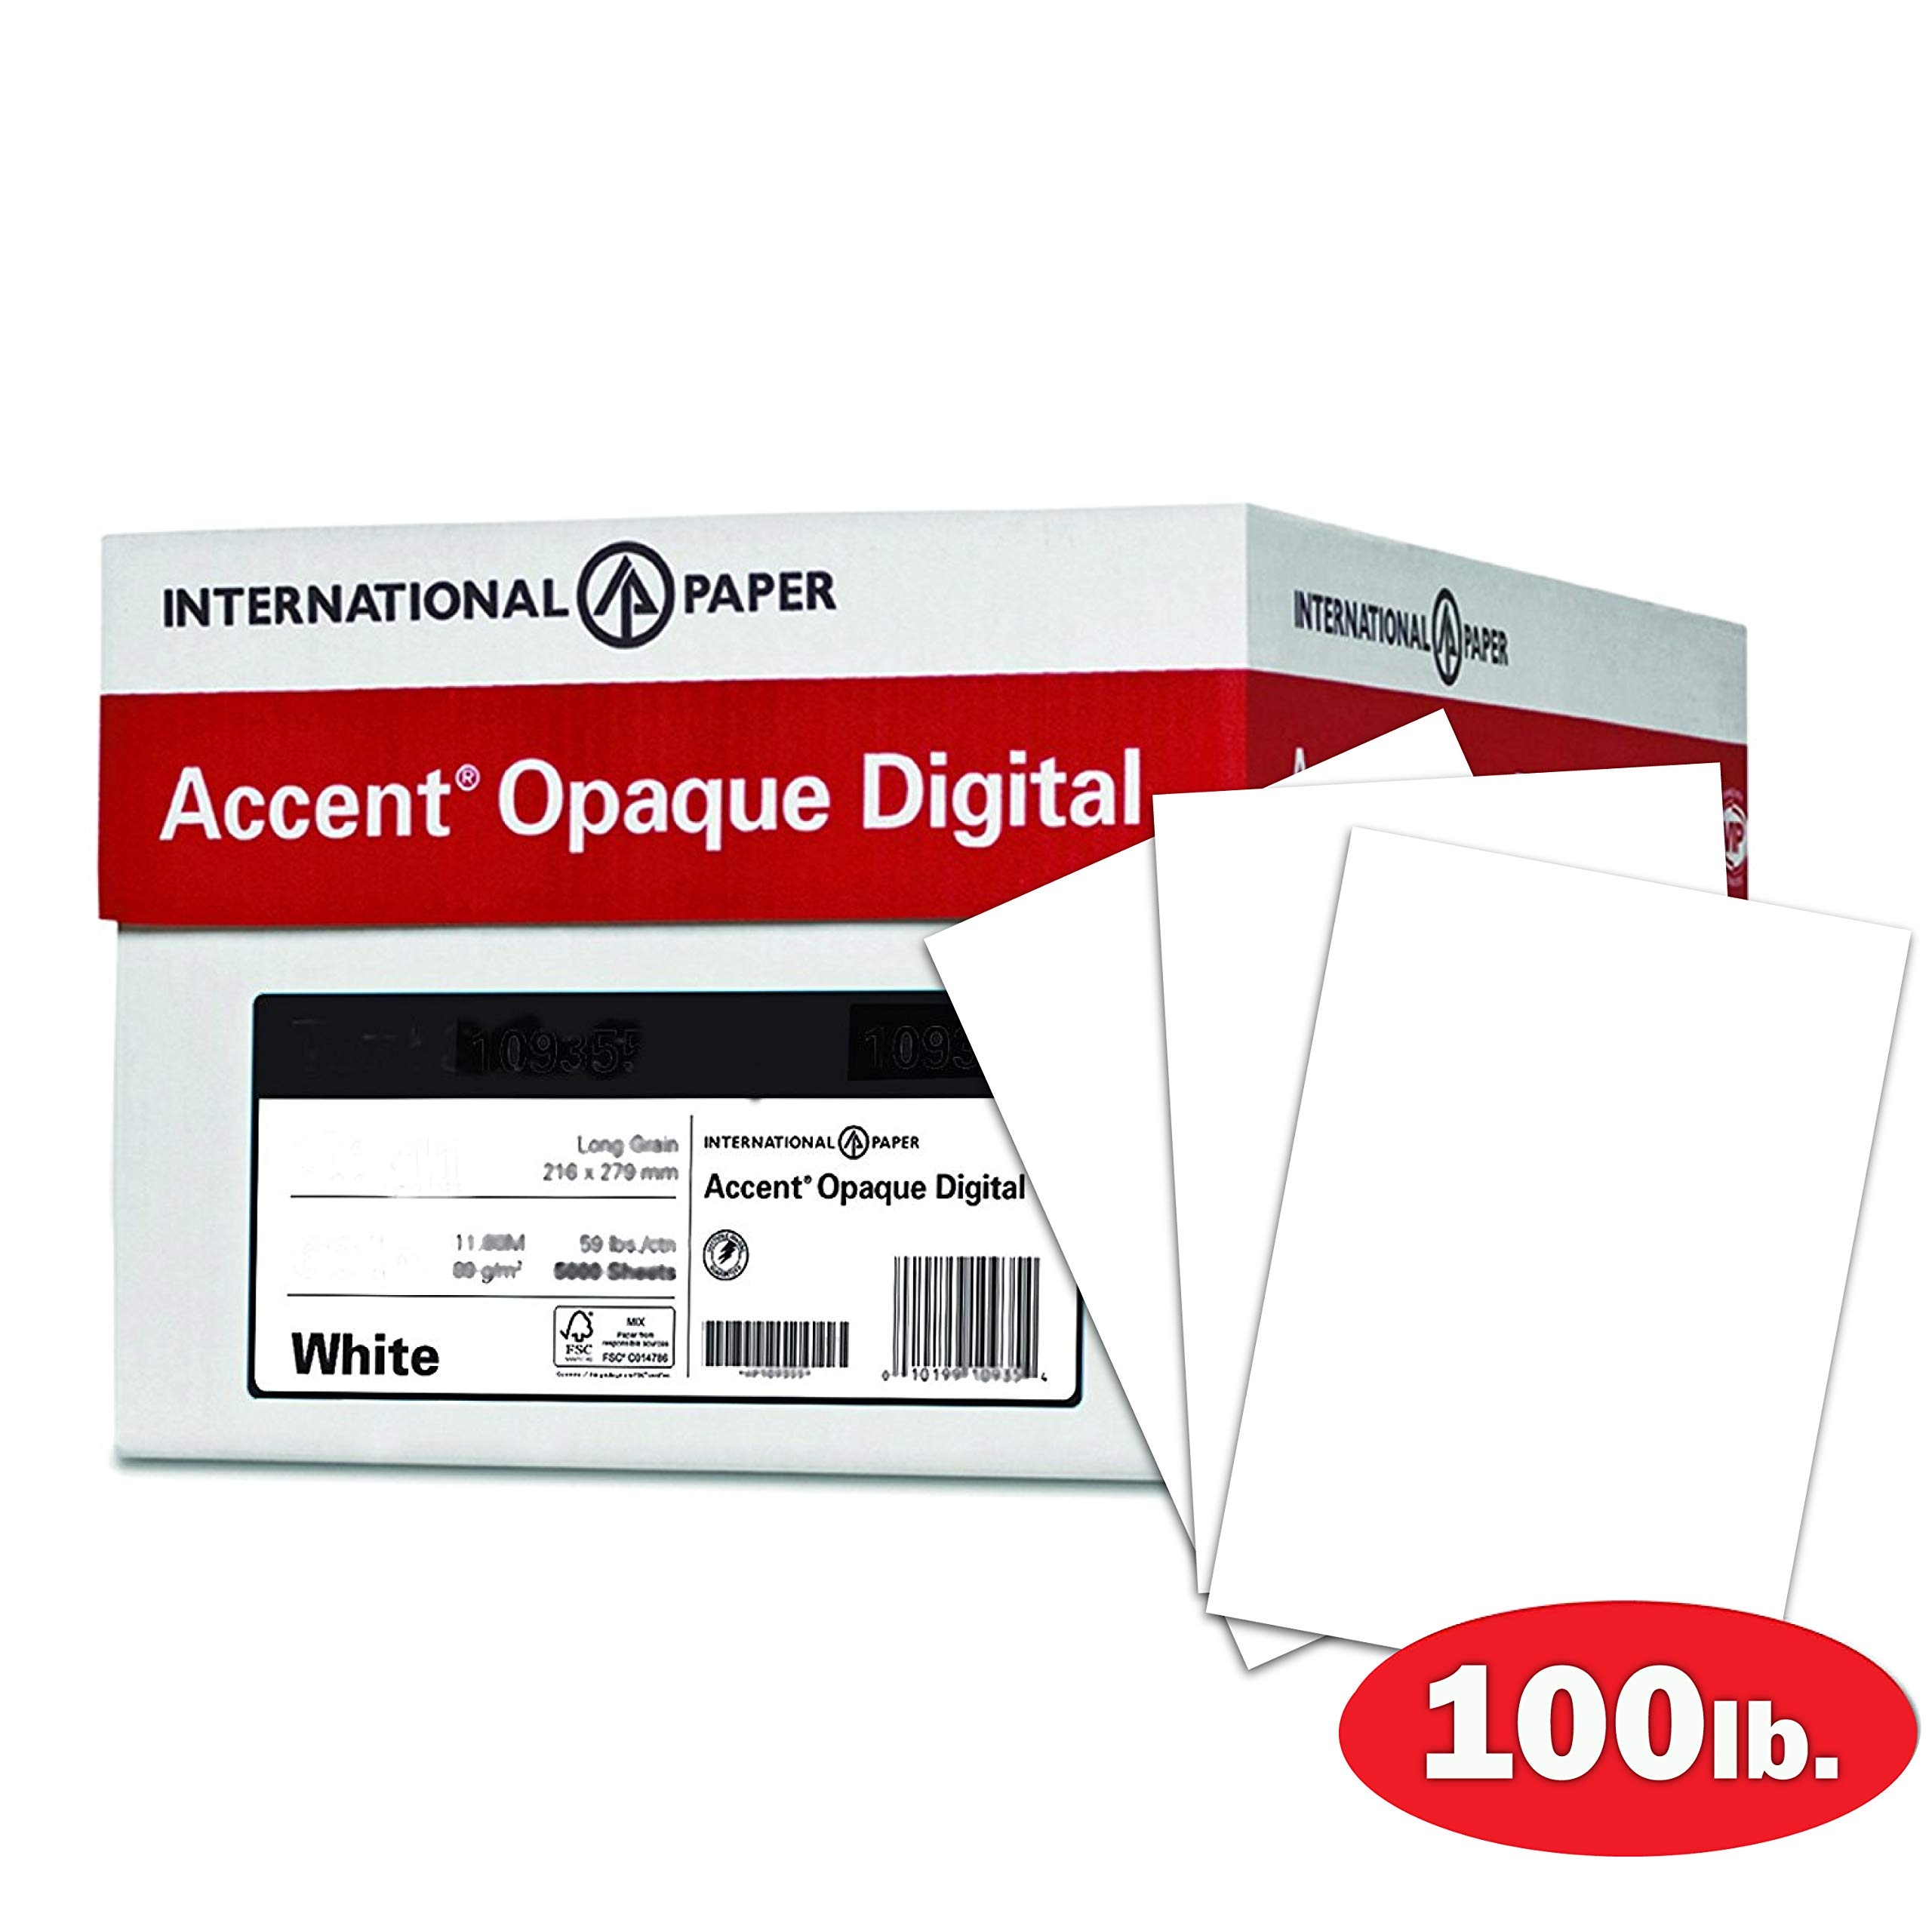 Accent Opaque Thick Cardstock Paper, White Paper, 100lb Cover, 271 gsm, 18x12 Paper, 97 Bright, 4 Ream Case / 700 Sheets, Smooth, Heavy Card Stock (189029C) by Accent (Image #1)